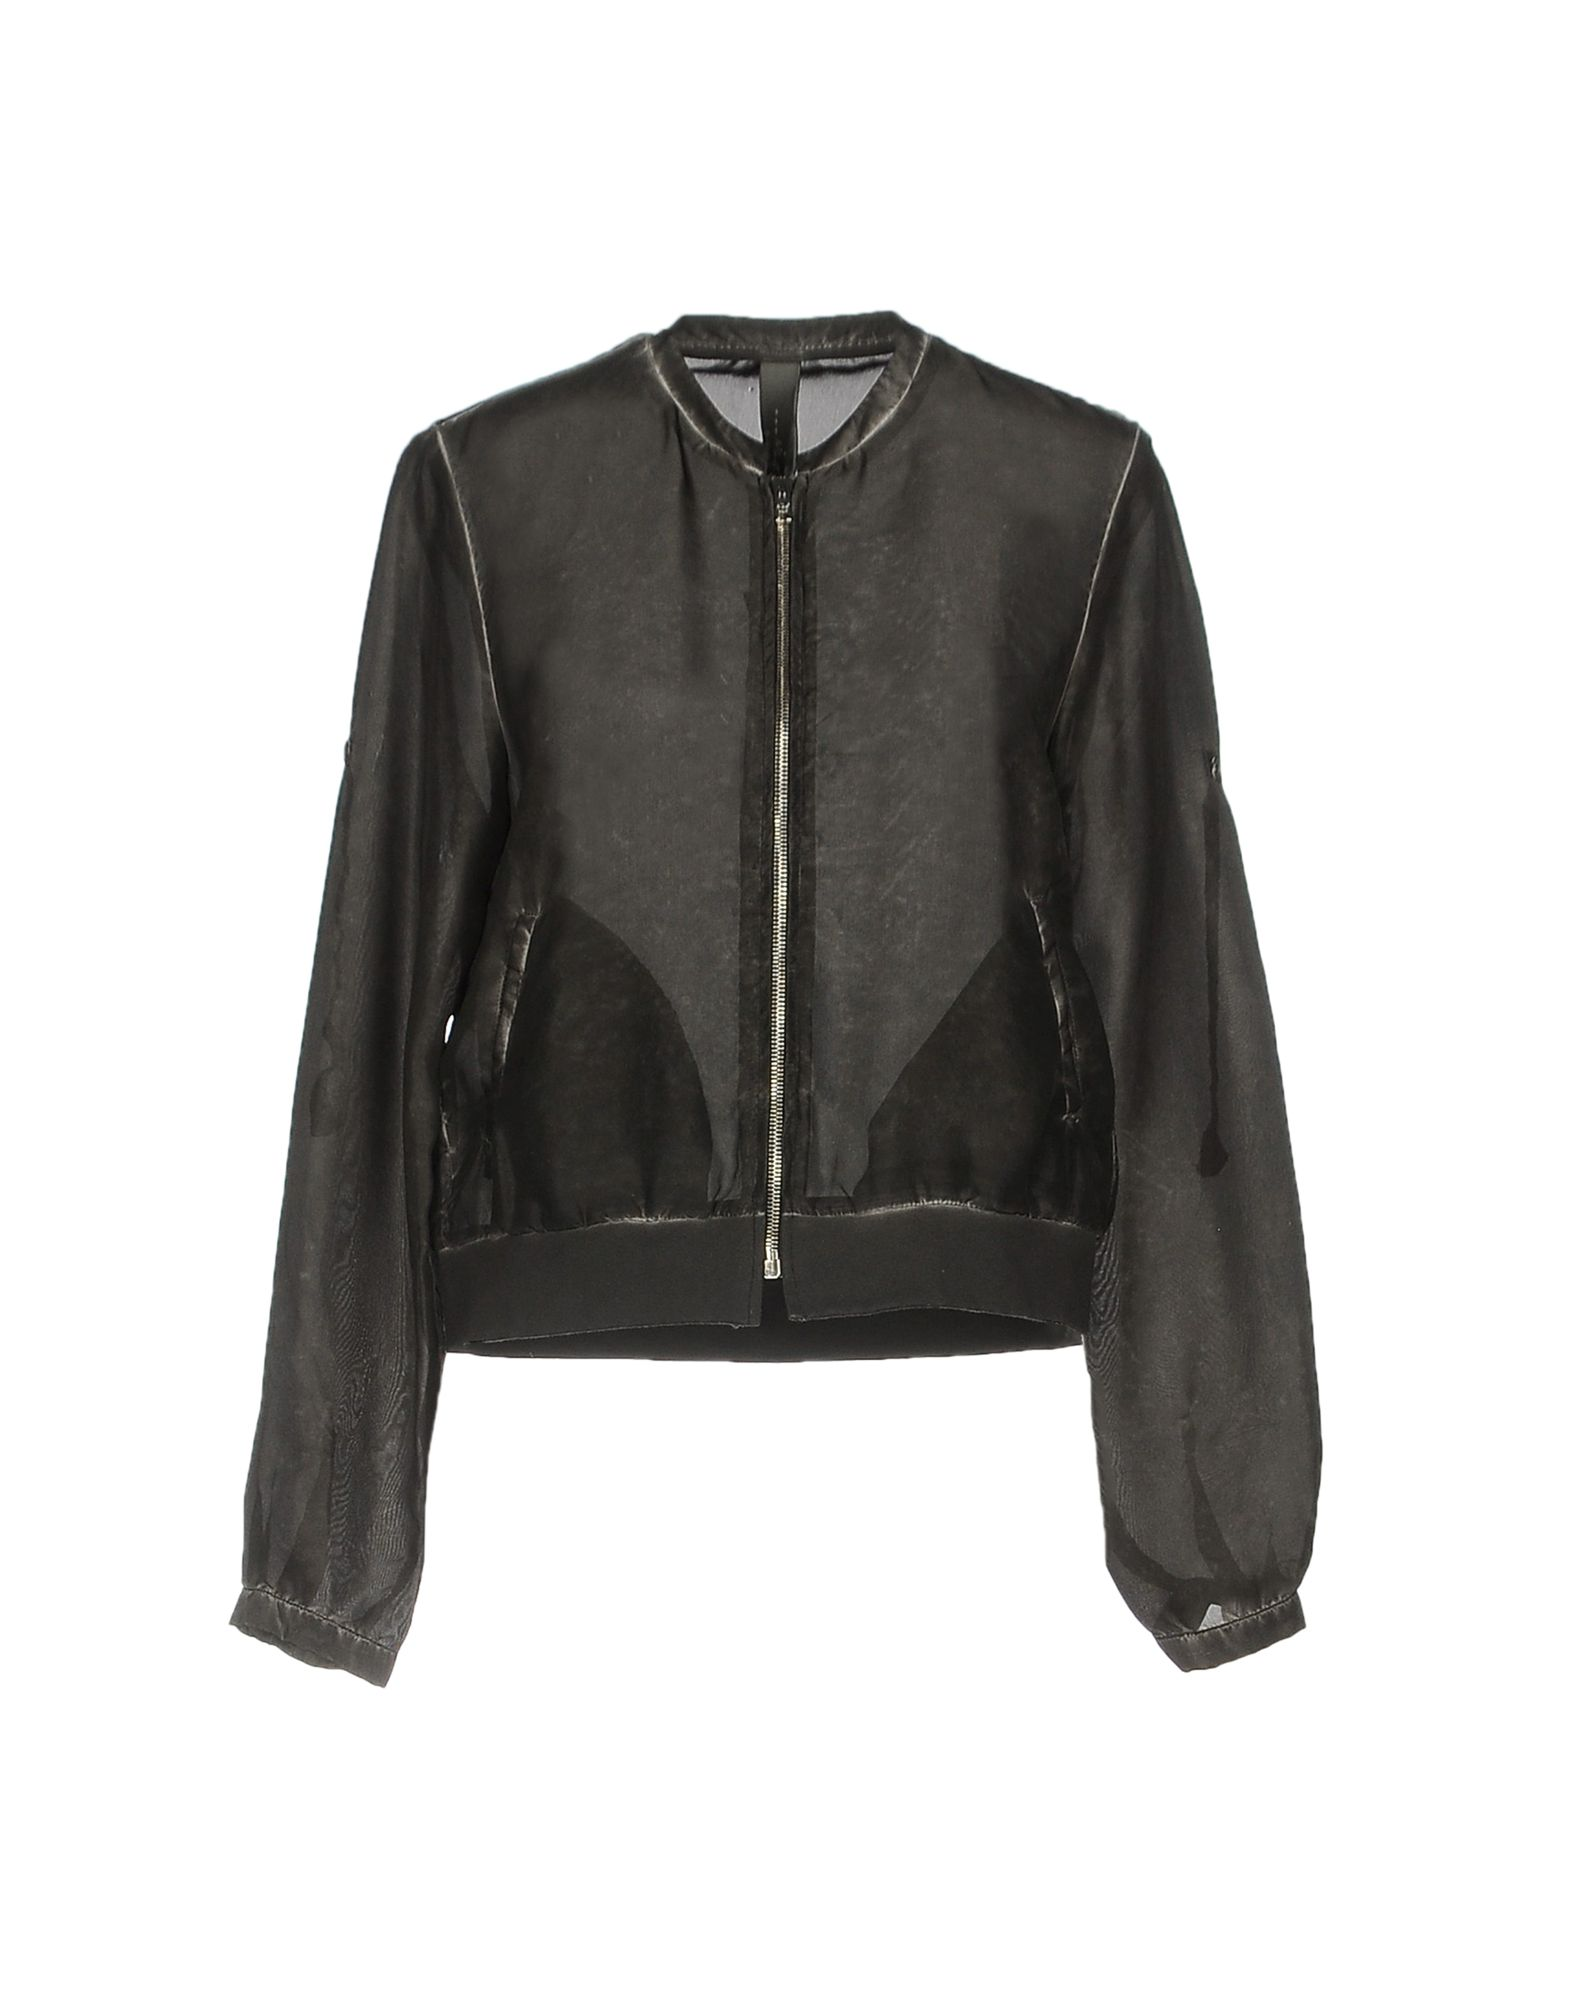 WLG BY GIORGIO BRATO Bomber in Steel Grey